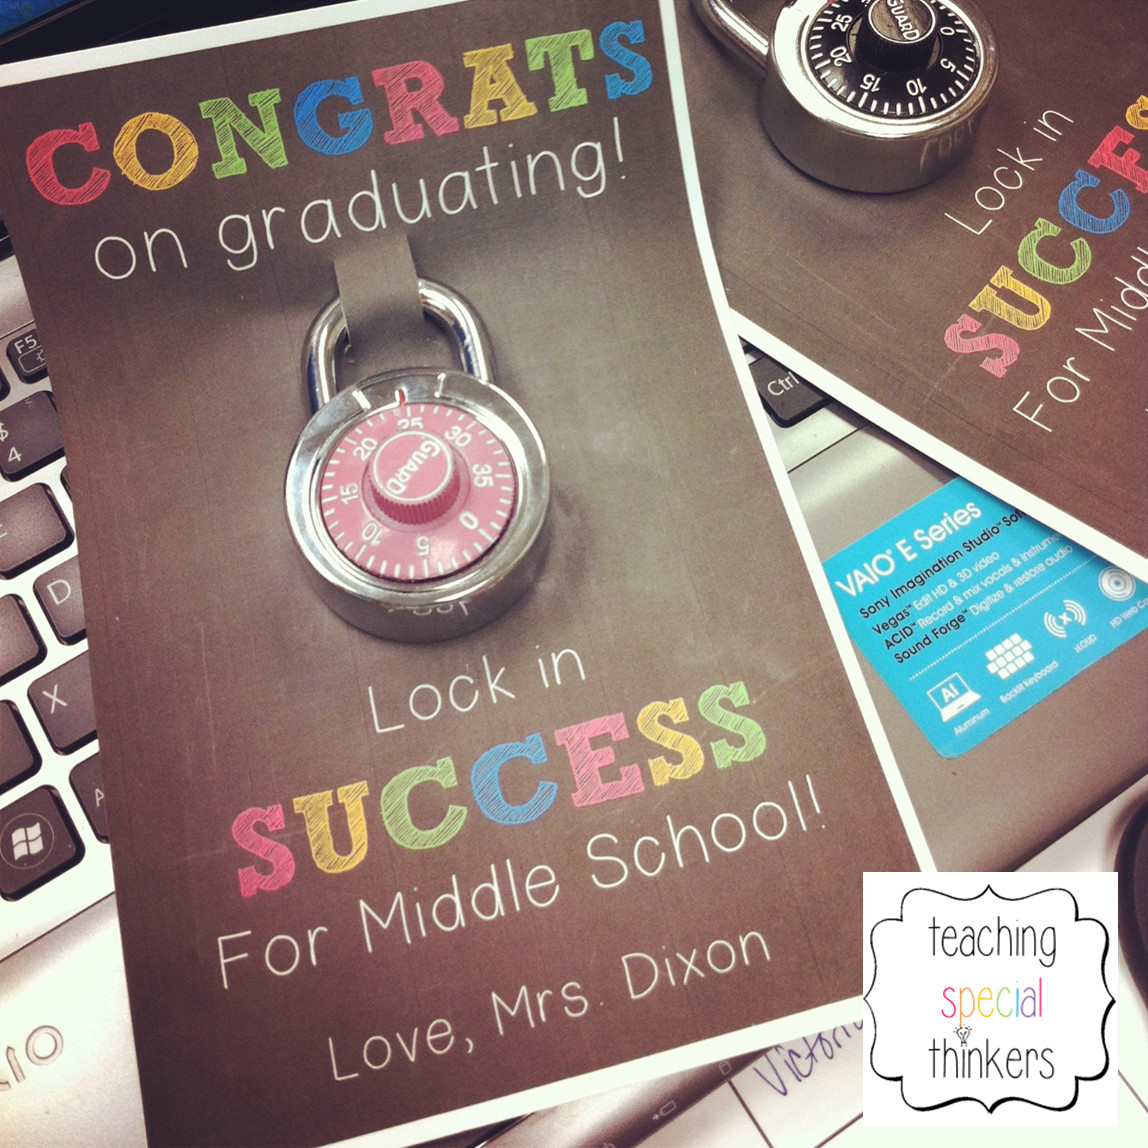 Elementary School Graduation Gift Ideas  Lock in Success – Student Gift for soon to be Middle